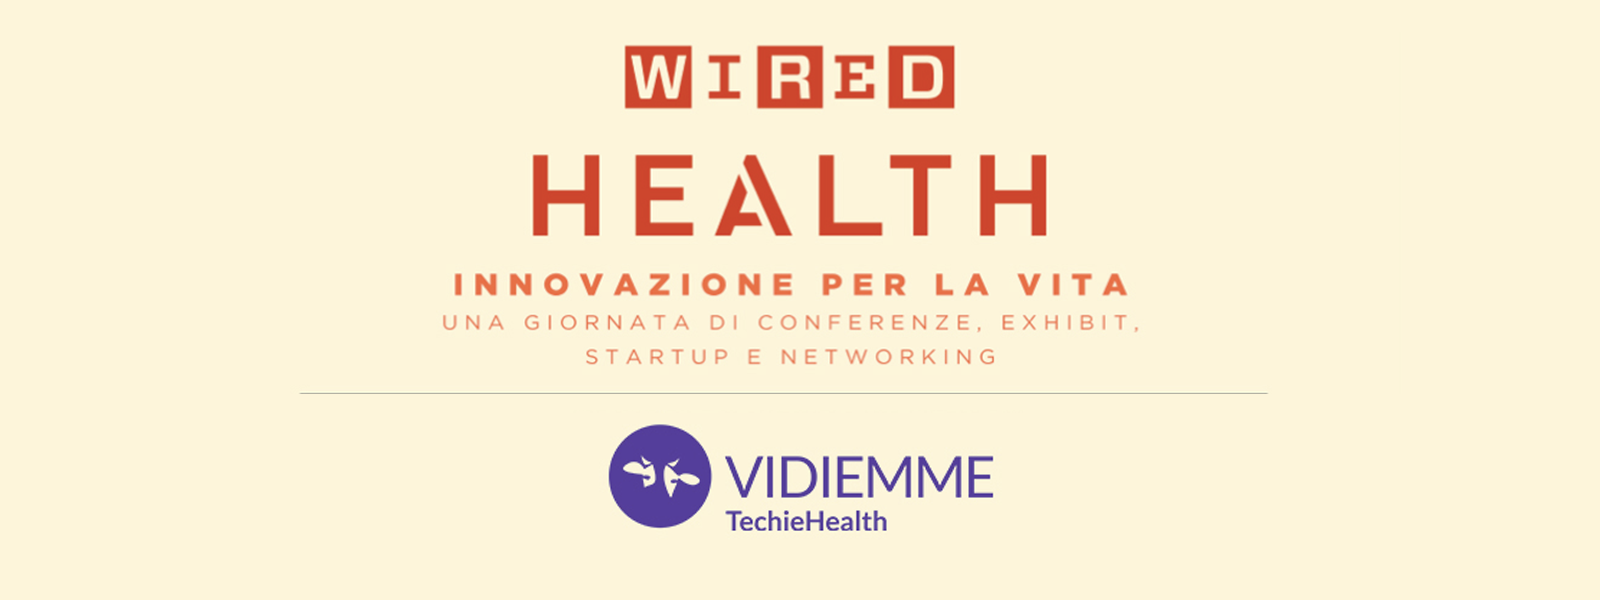 Wired Health